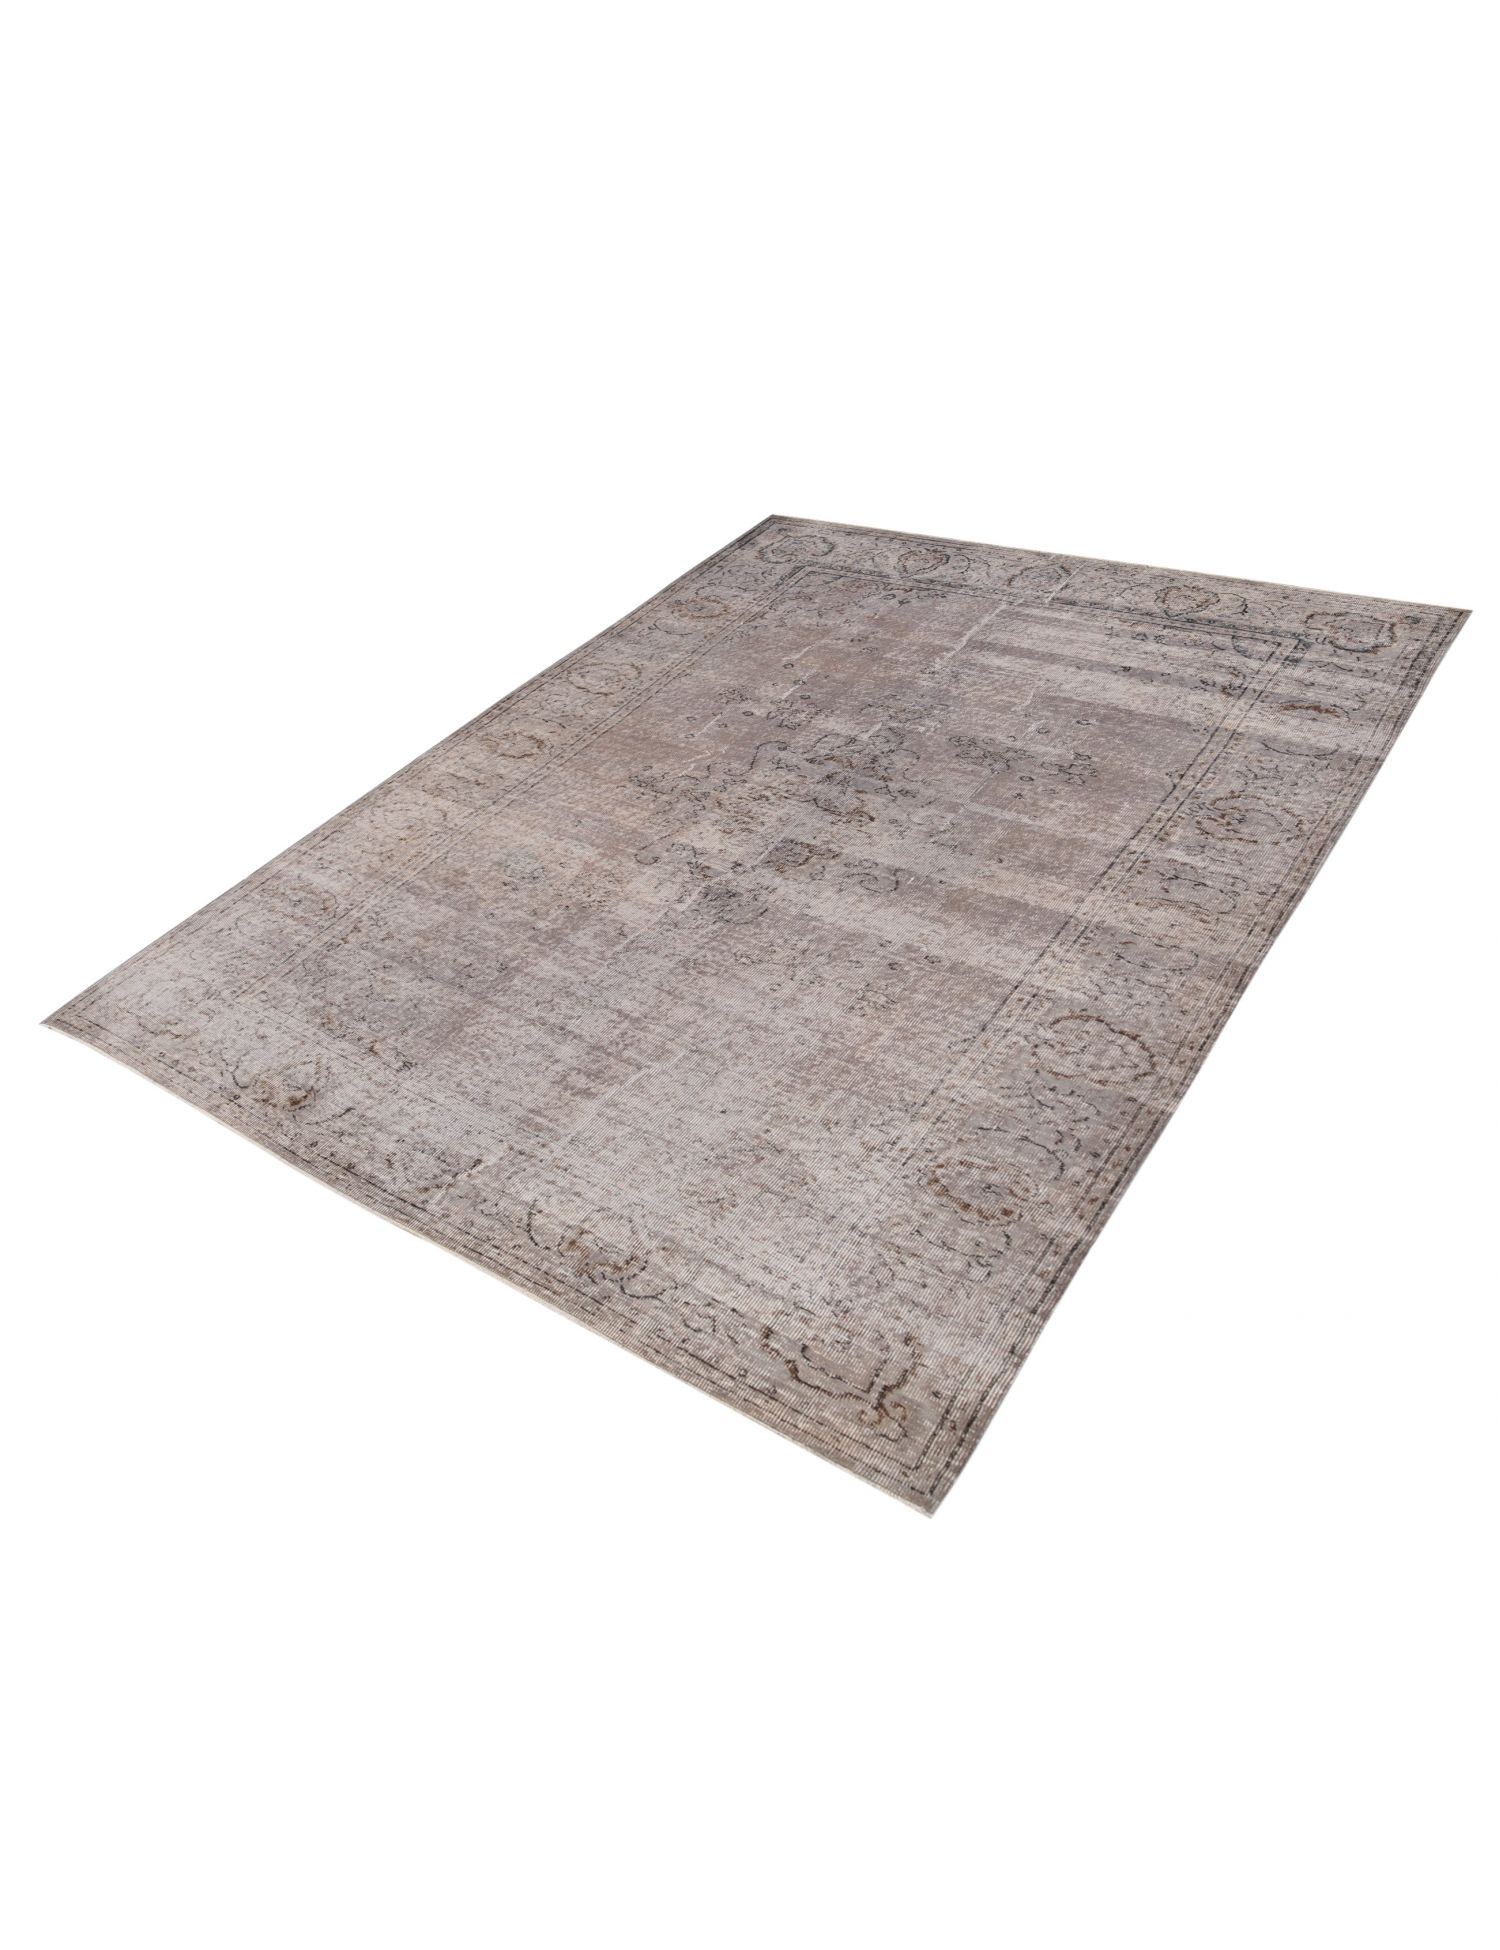 Vintage Carpet  grey <br/>306 x 193 cm